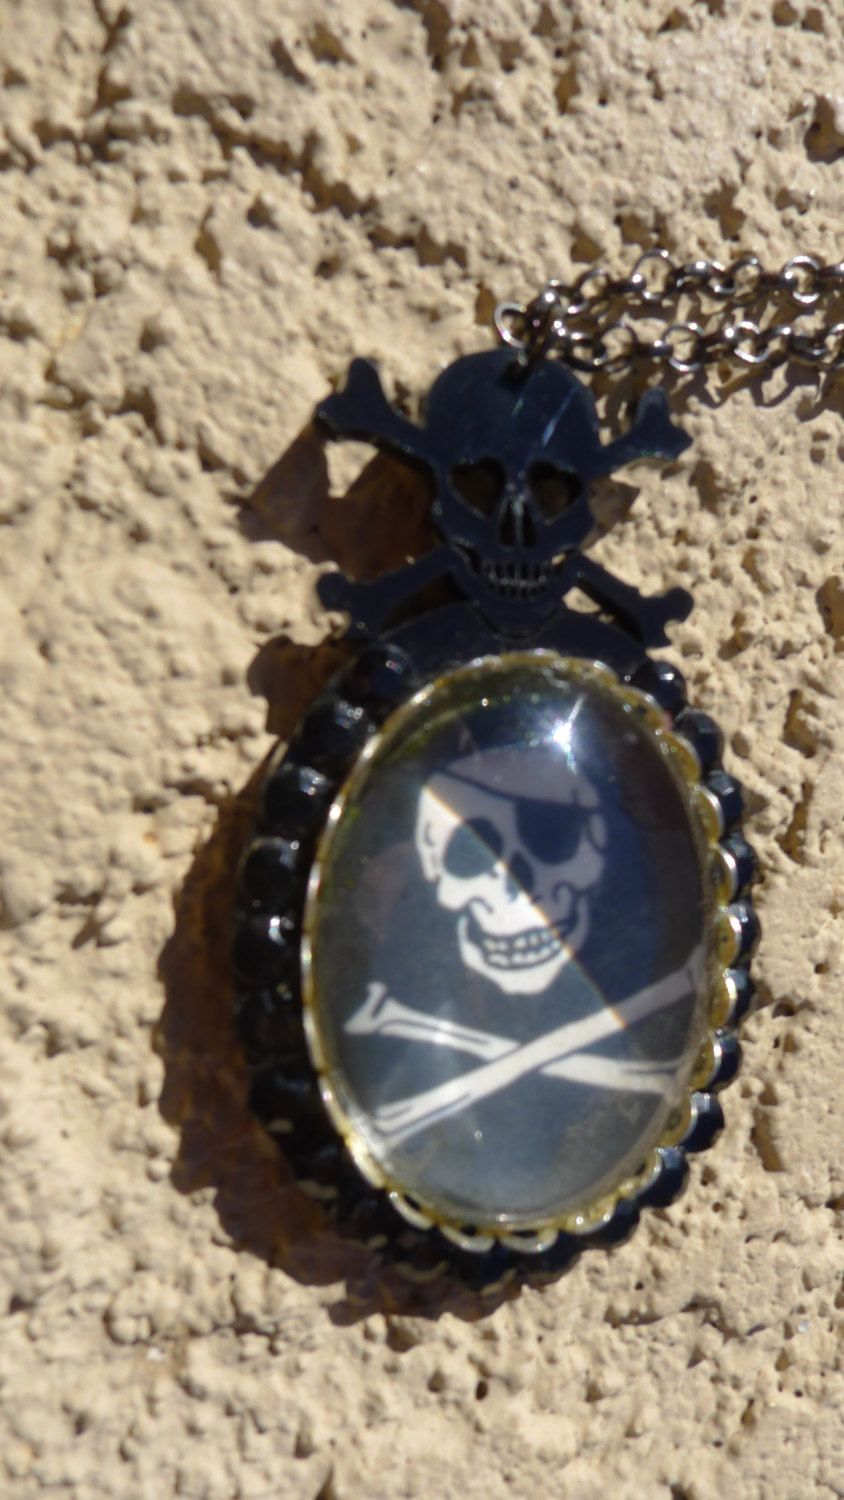 Skull Pendant Black Swarovski Crystals Skull Crossed Bones Pirate Cameo Chain Renaissance Faire Gothic Rockabilly Punk Biker ..... by princessmadisonparis on Etsy